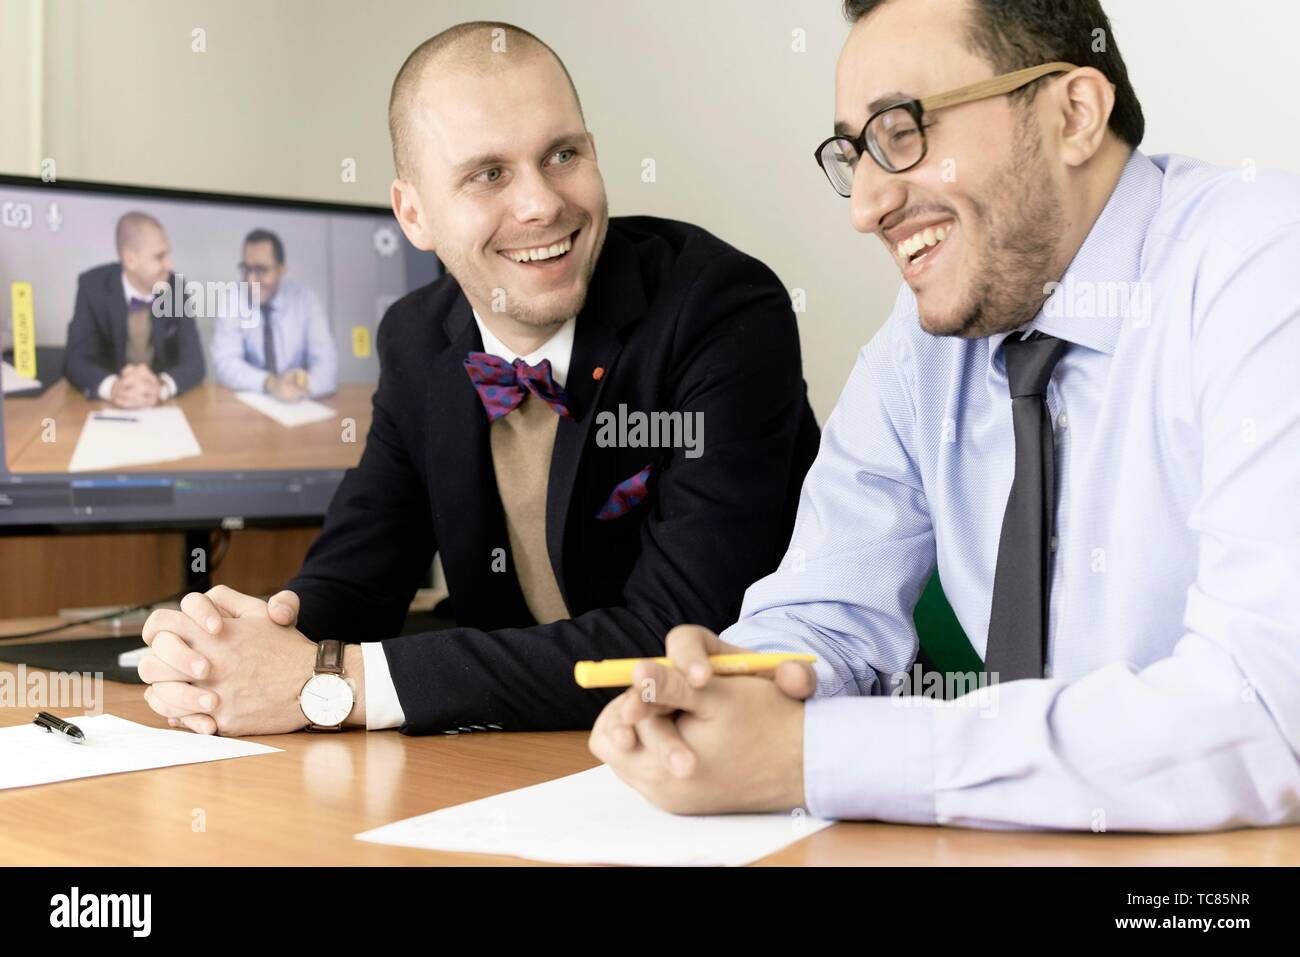 laughing business men at conference, lawyers consulting at online live stream, in office, in Cottbus, Brandenburg, Germany - Stock Image